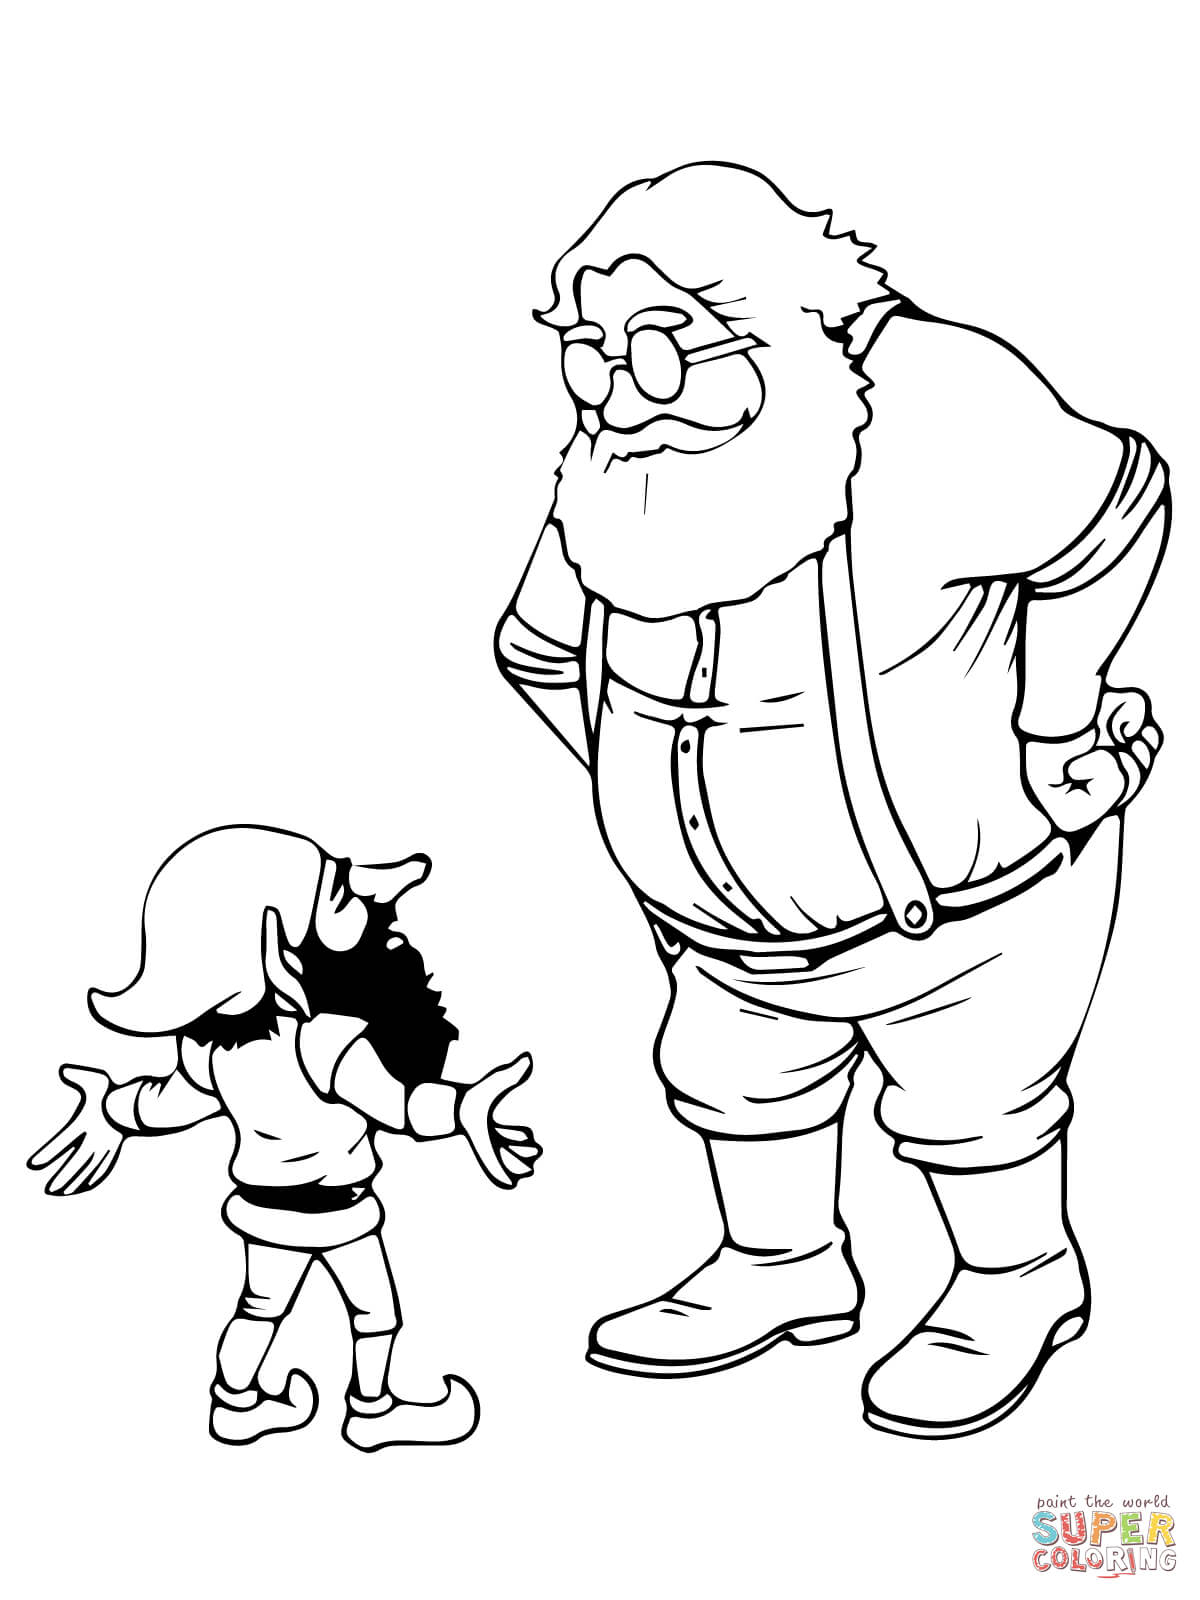 Elf Coloring Pages Printable Santa And Christmas Elf Coloring Page Free Printable Coloring Pages